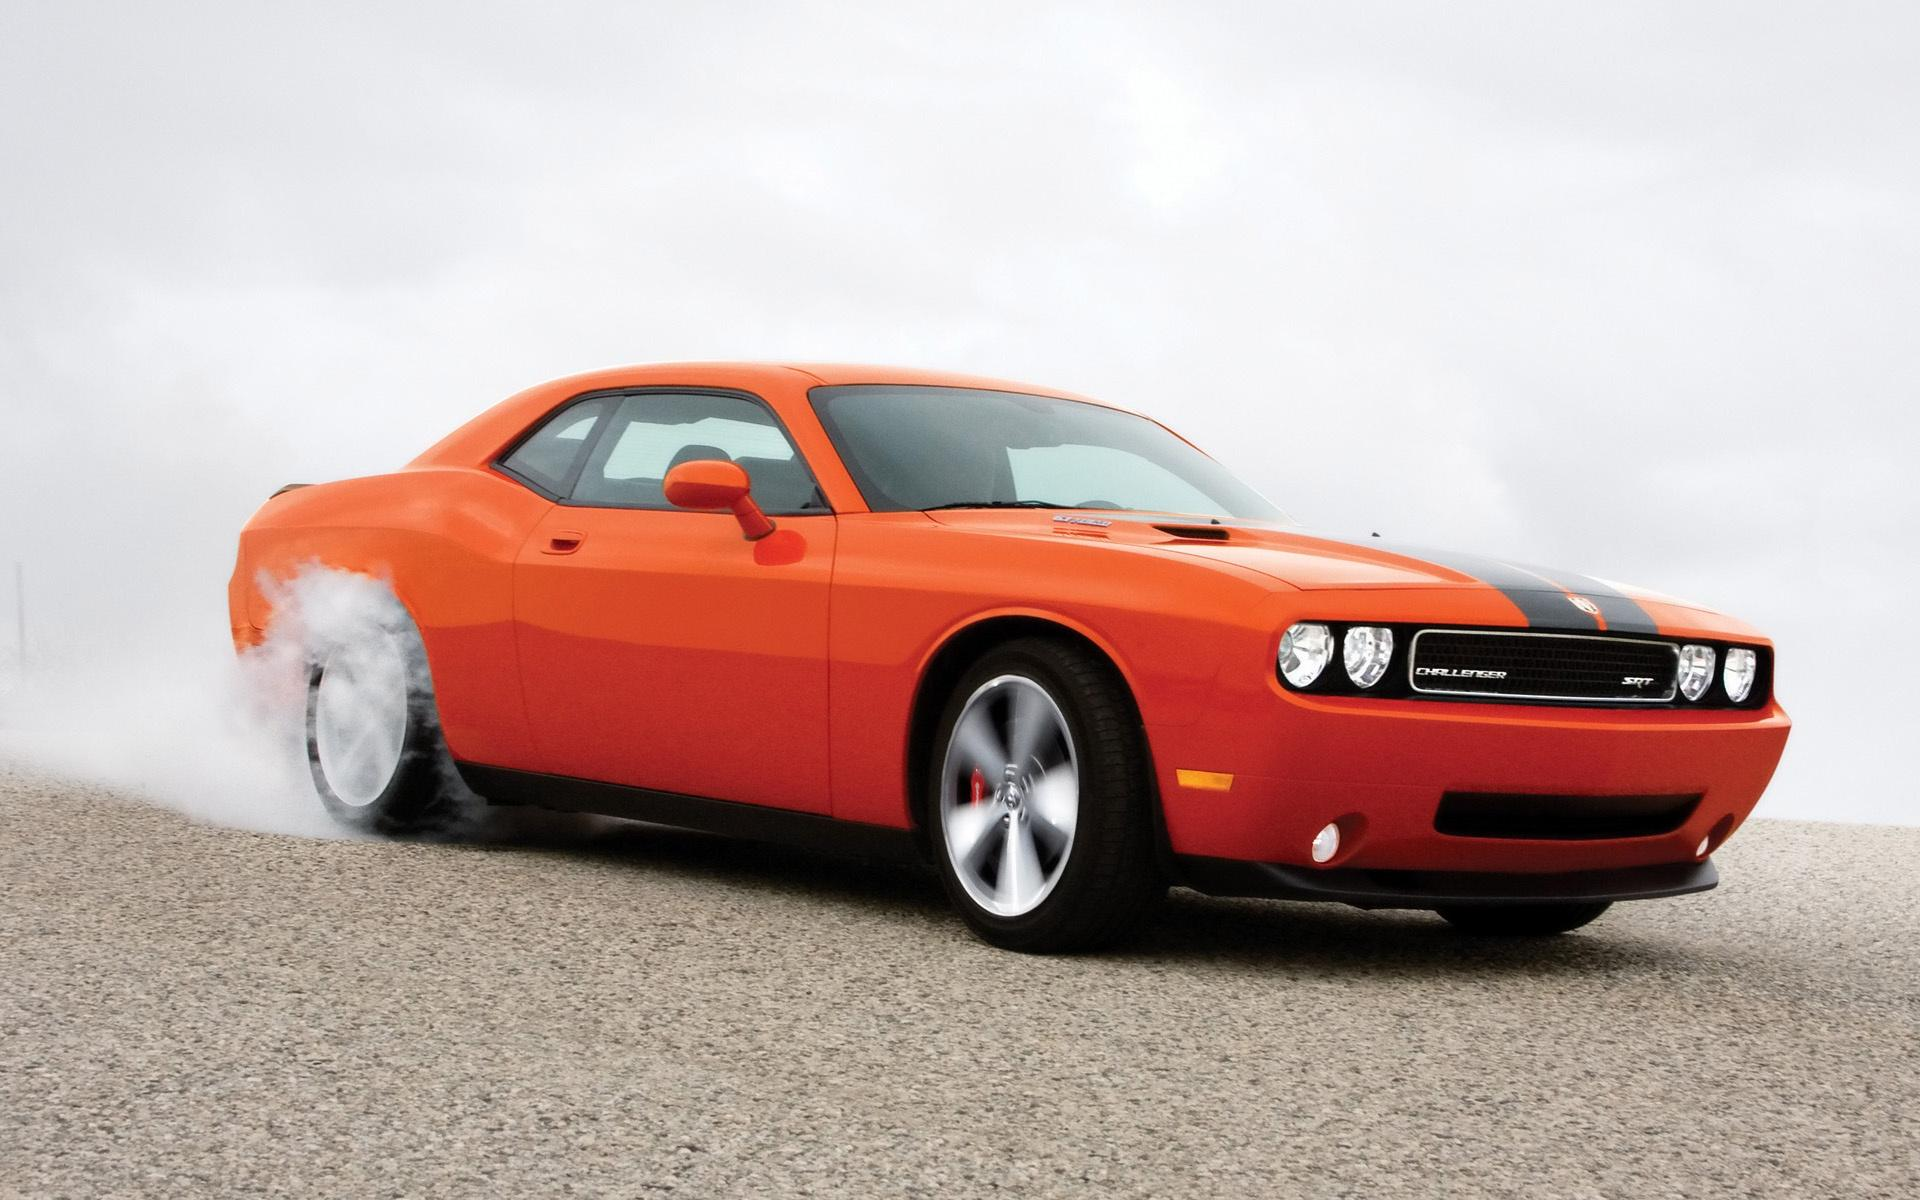 2008 Dodge Challenger Srt8 Burnout Side Angle 1920x1200